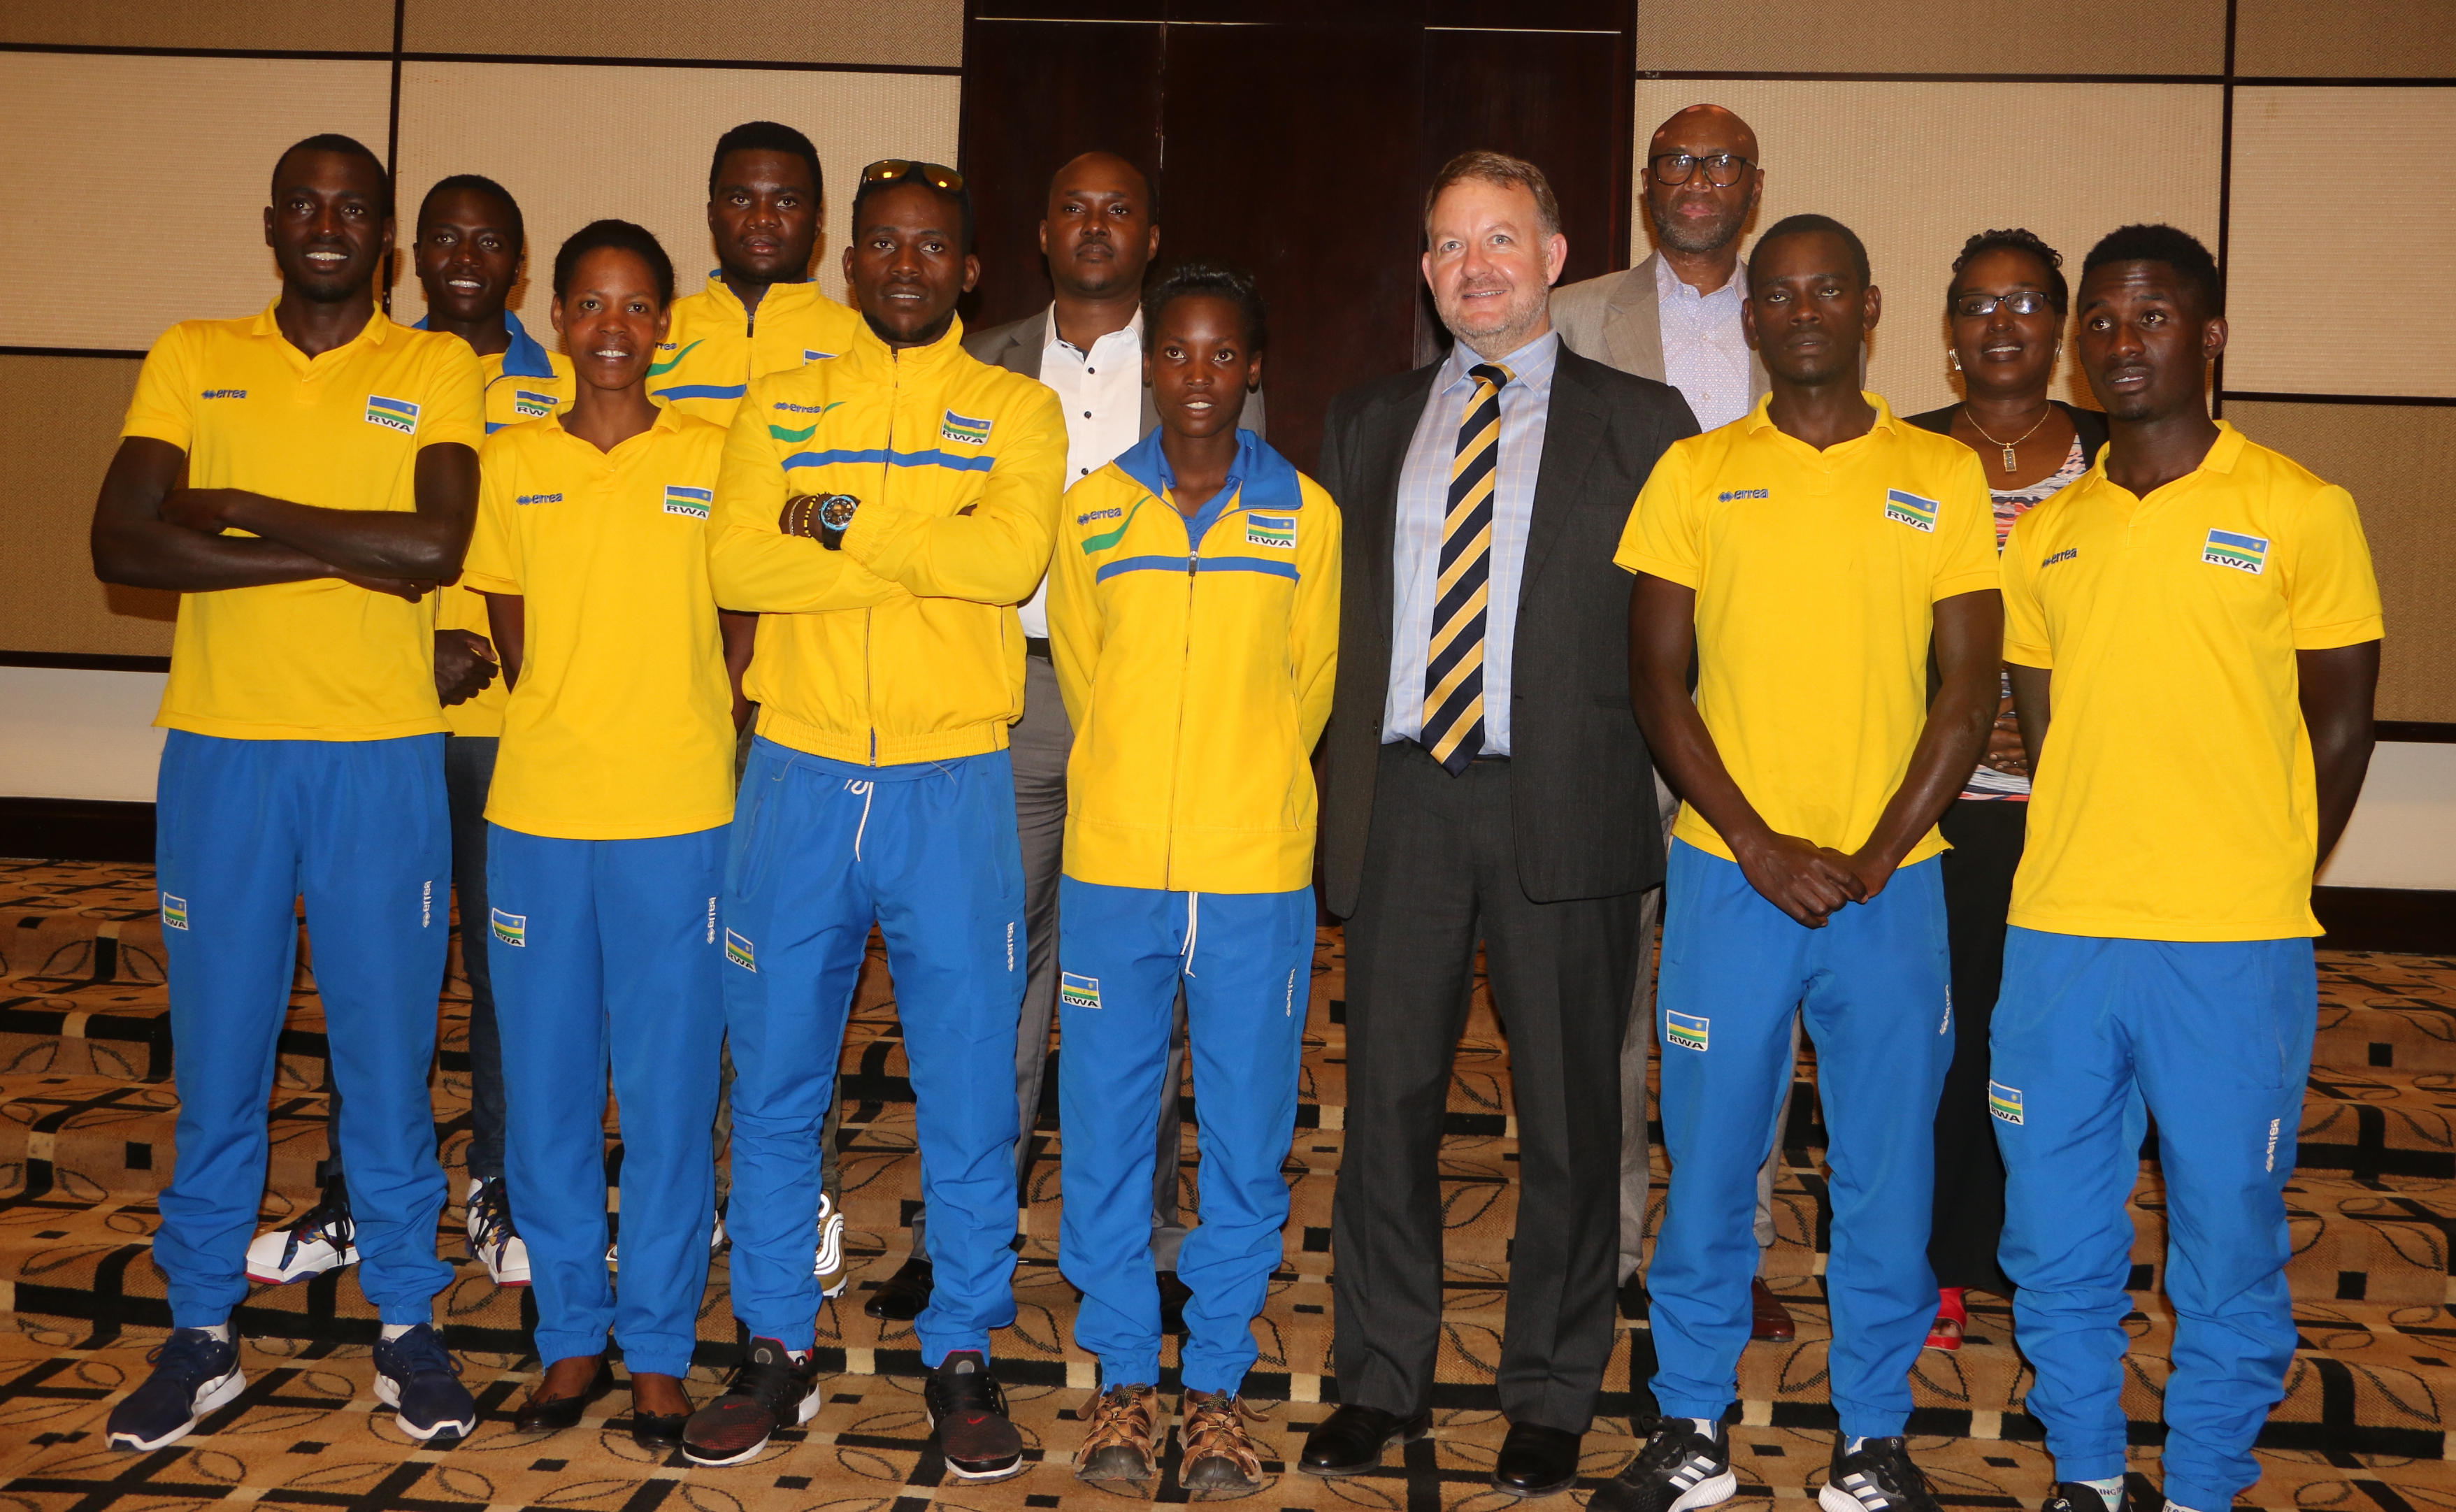 76a870f0e The cycling team that will represent the country in Commonwealth Games next  month.